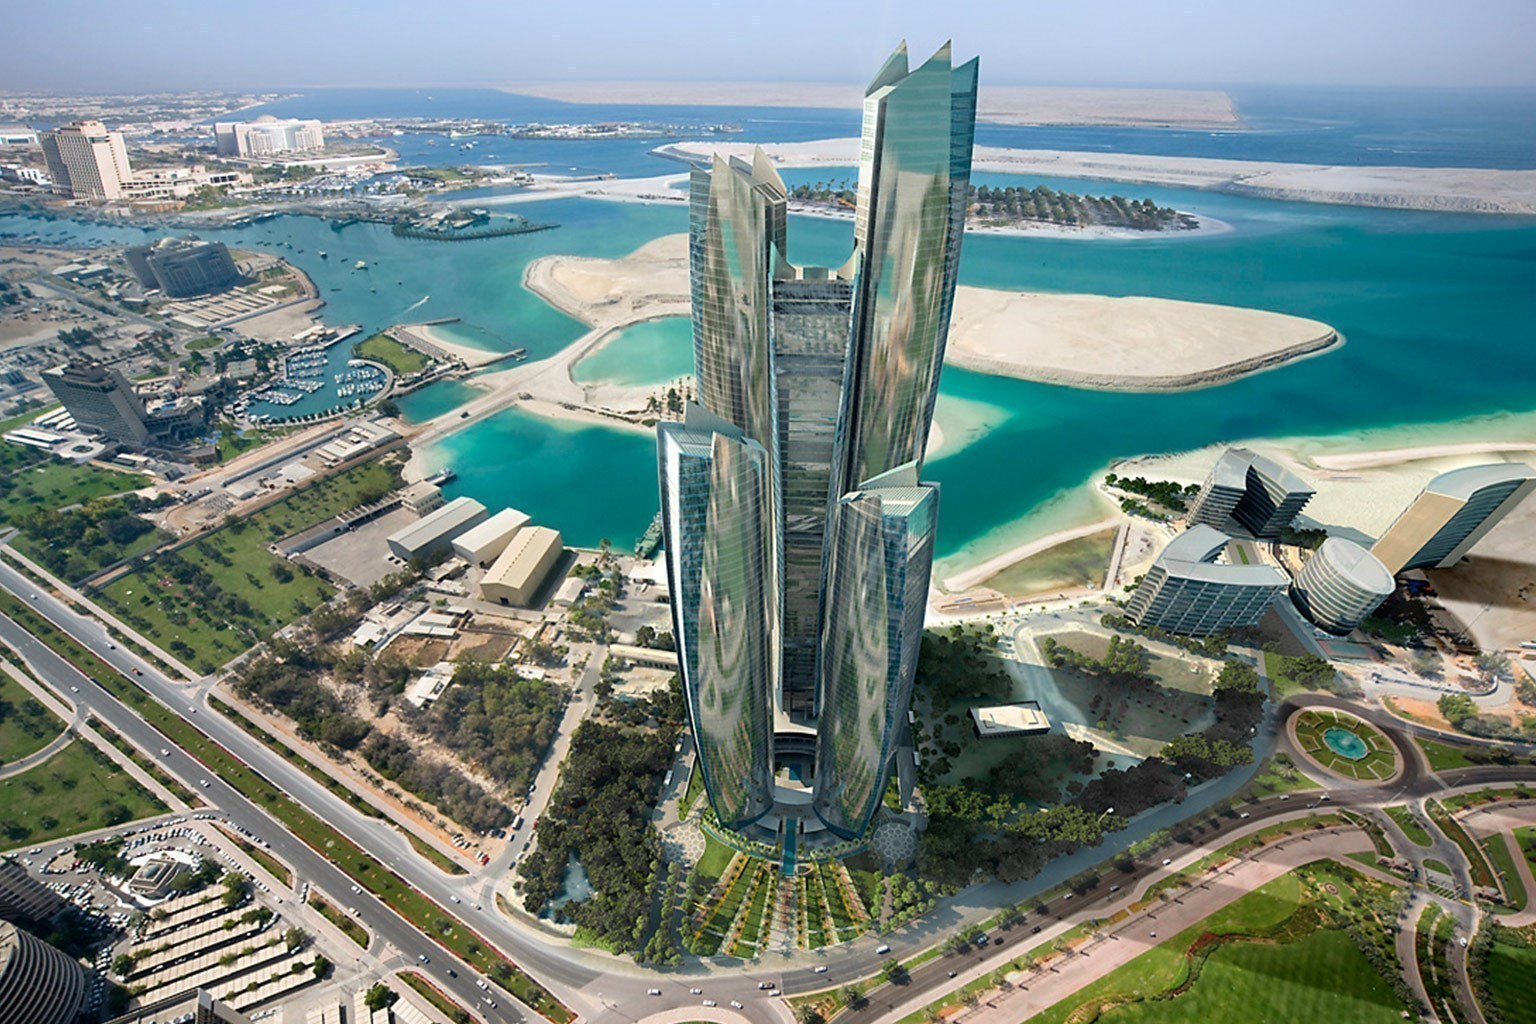 Jumeirah at etihad towers in abu dhabi designreisen for Hispano international decor abu dhabi